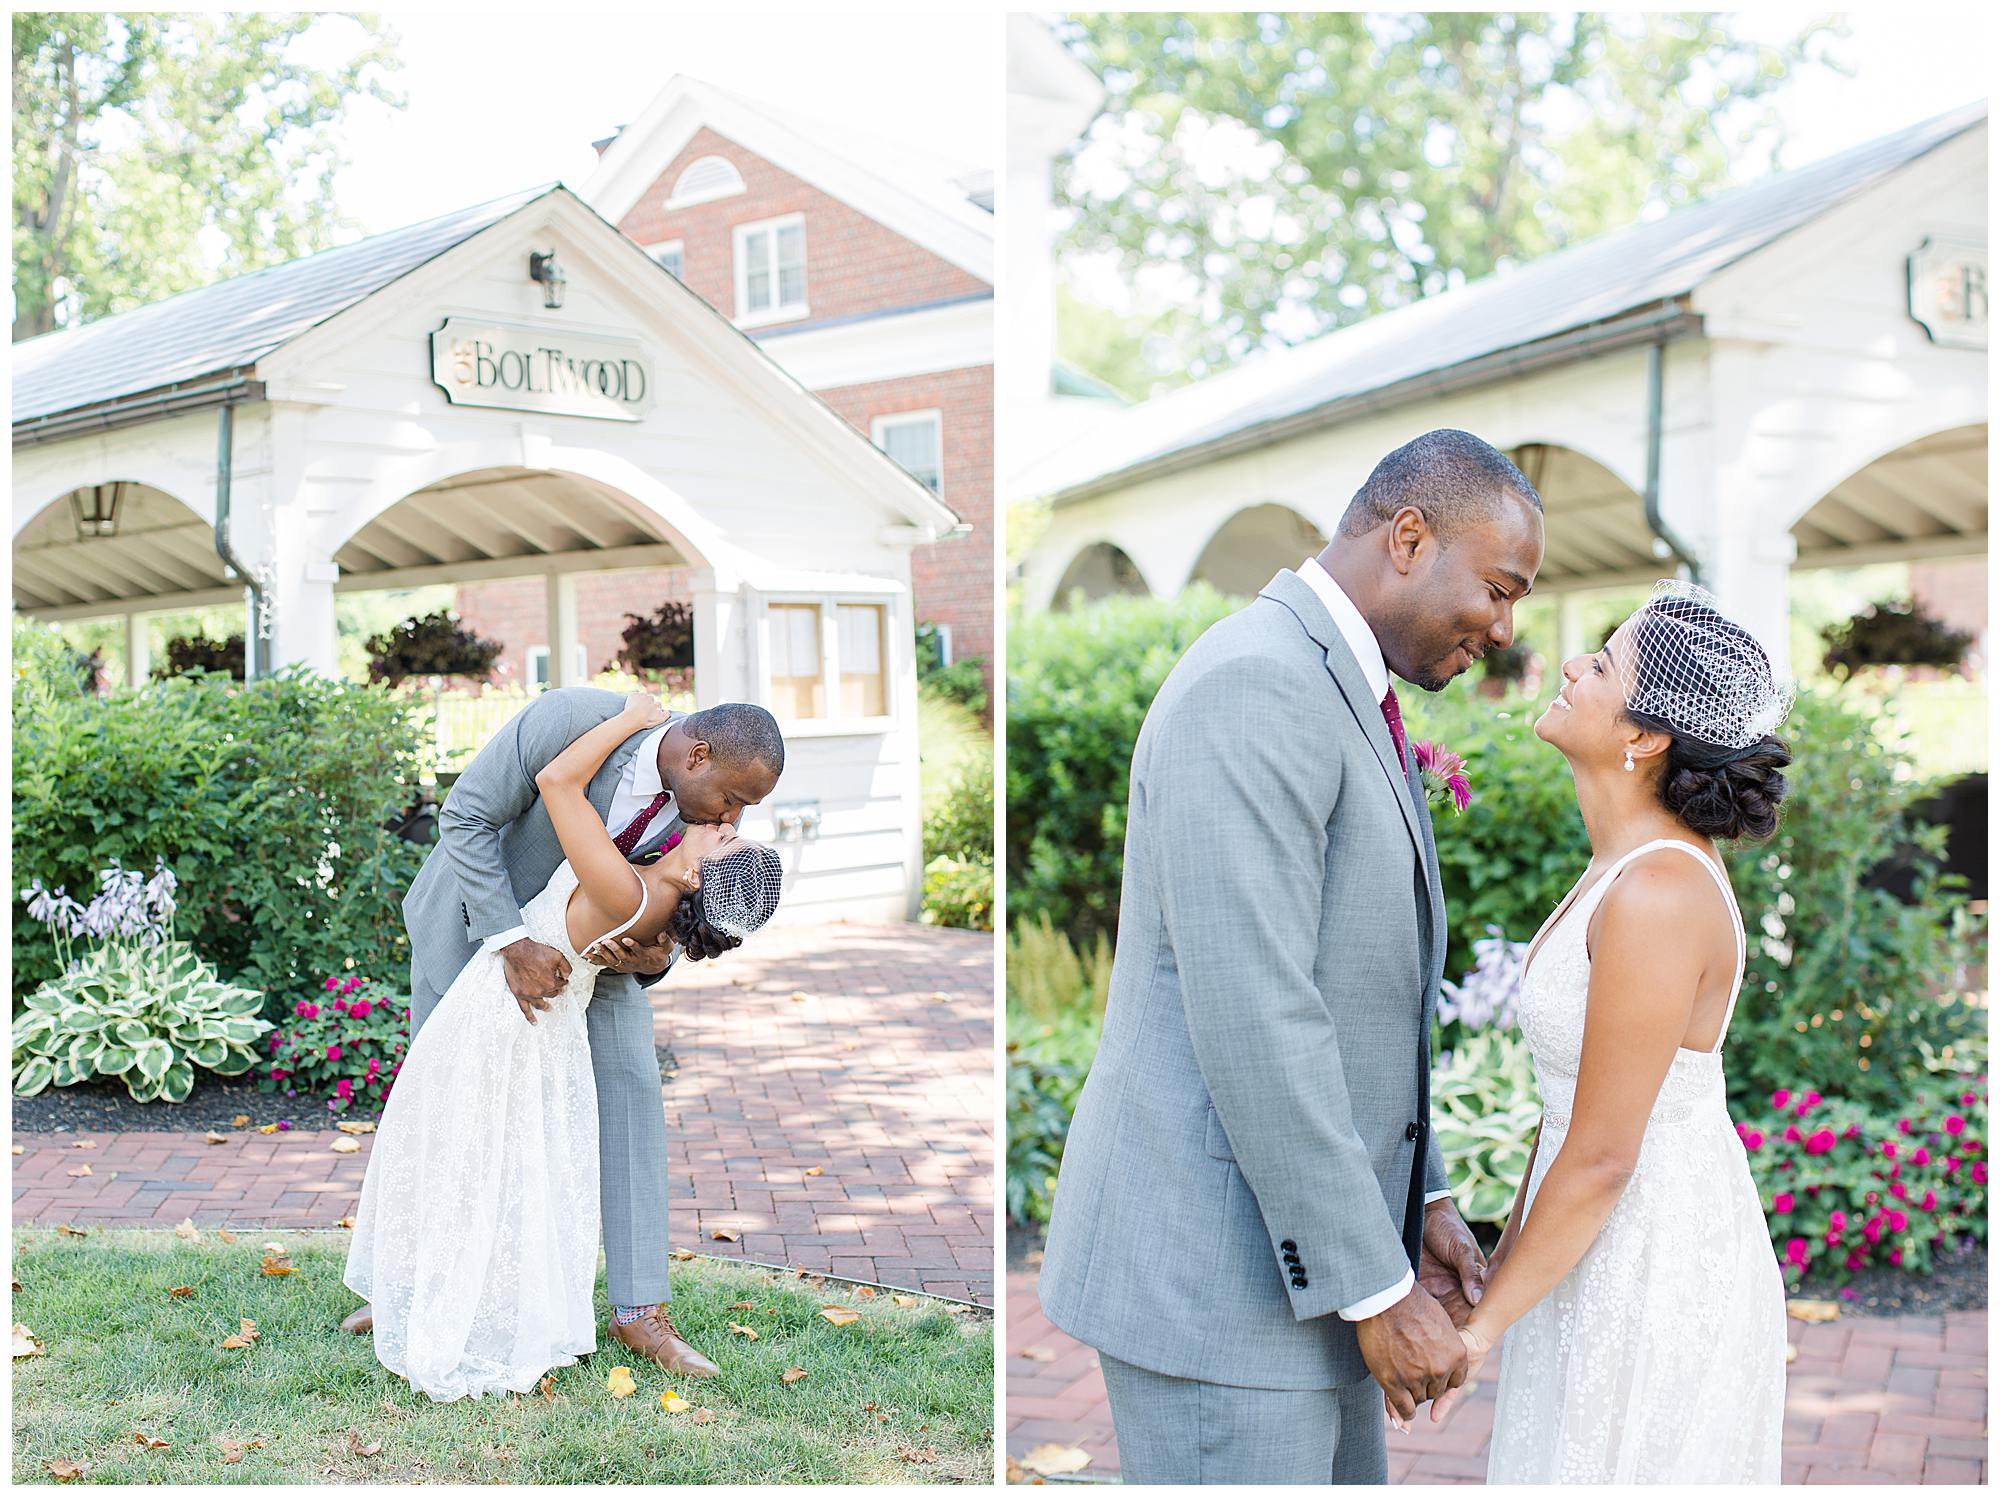 Inn on Boltwood Wedding